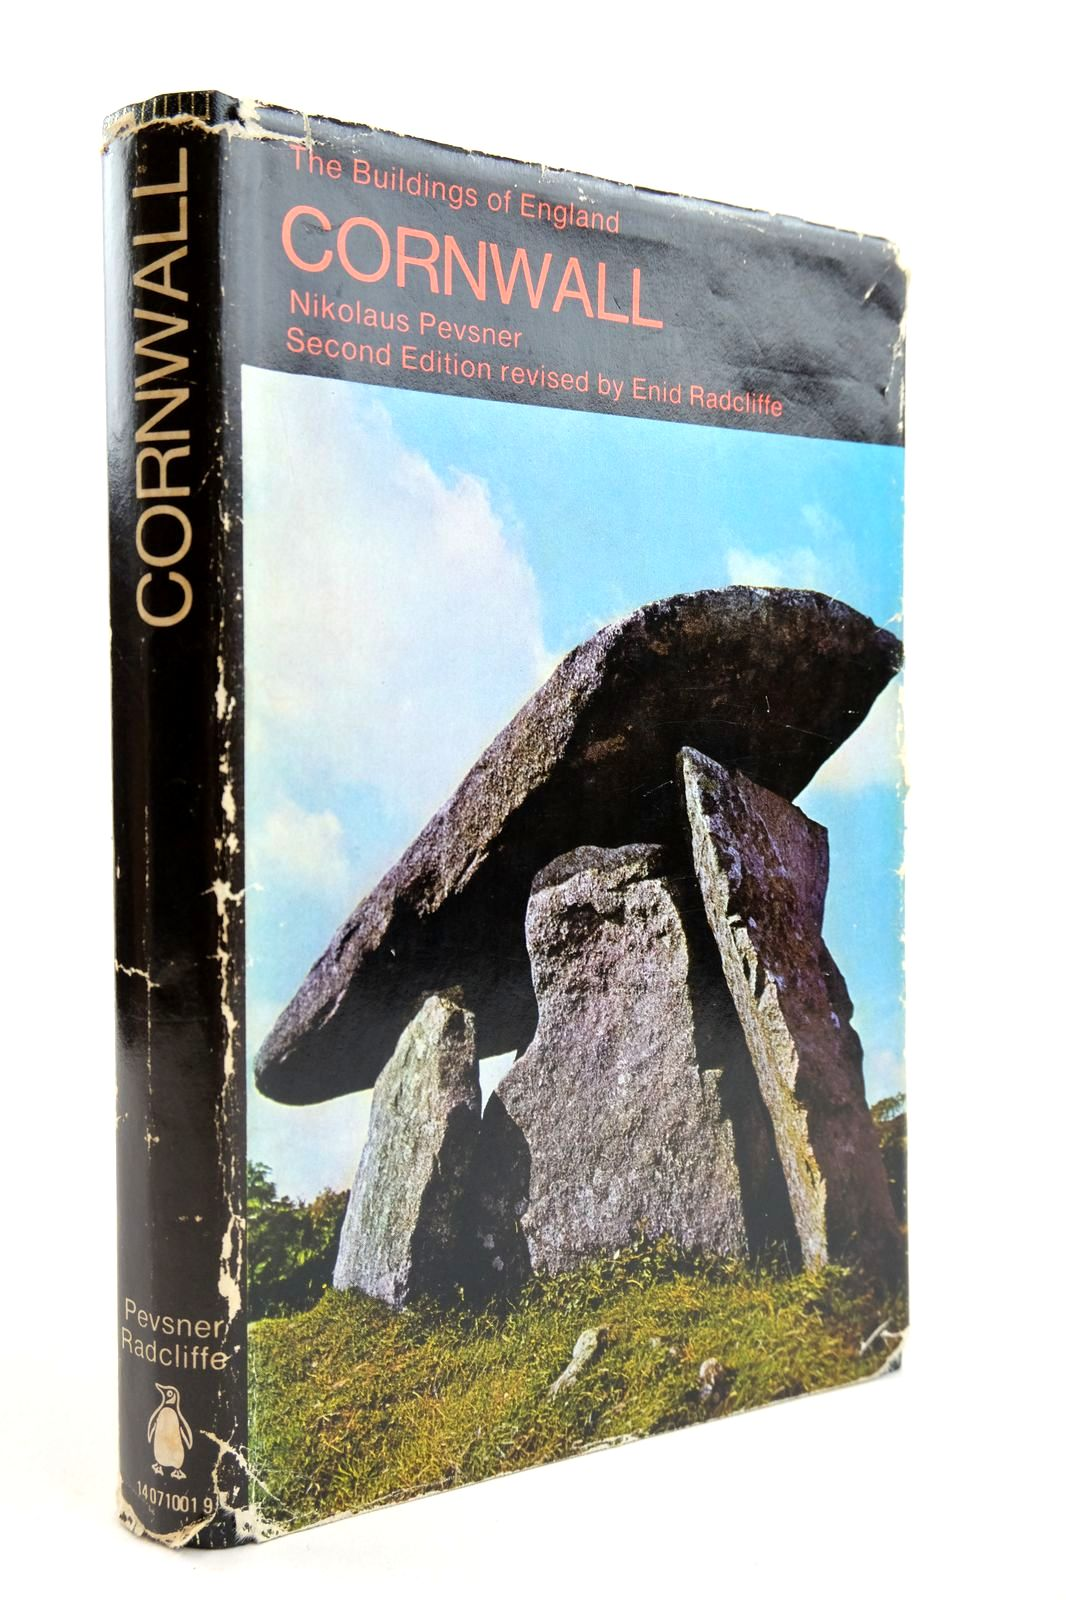 Photo of CORNWALL (BUILDINGS OF ENGLAND) written by Pevsner, Nikolaus Radcliffe, Enid published by Penguin (STOCK CODE: 2132594)  for sale by Stella & Rose's Books